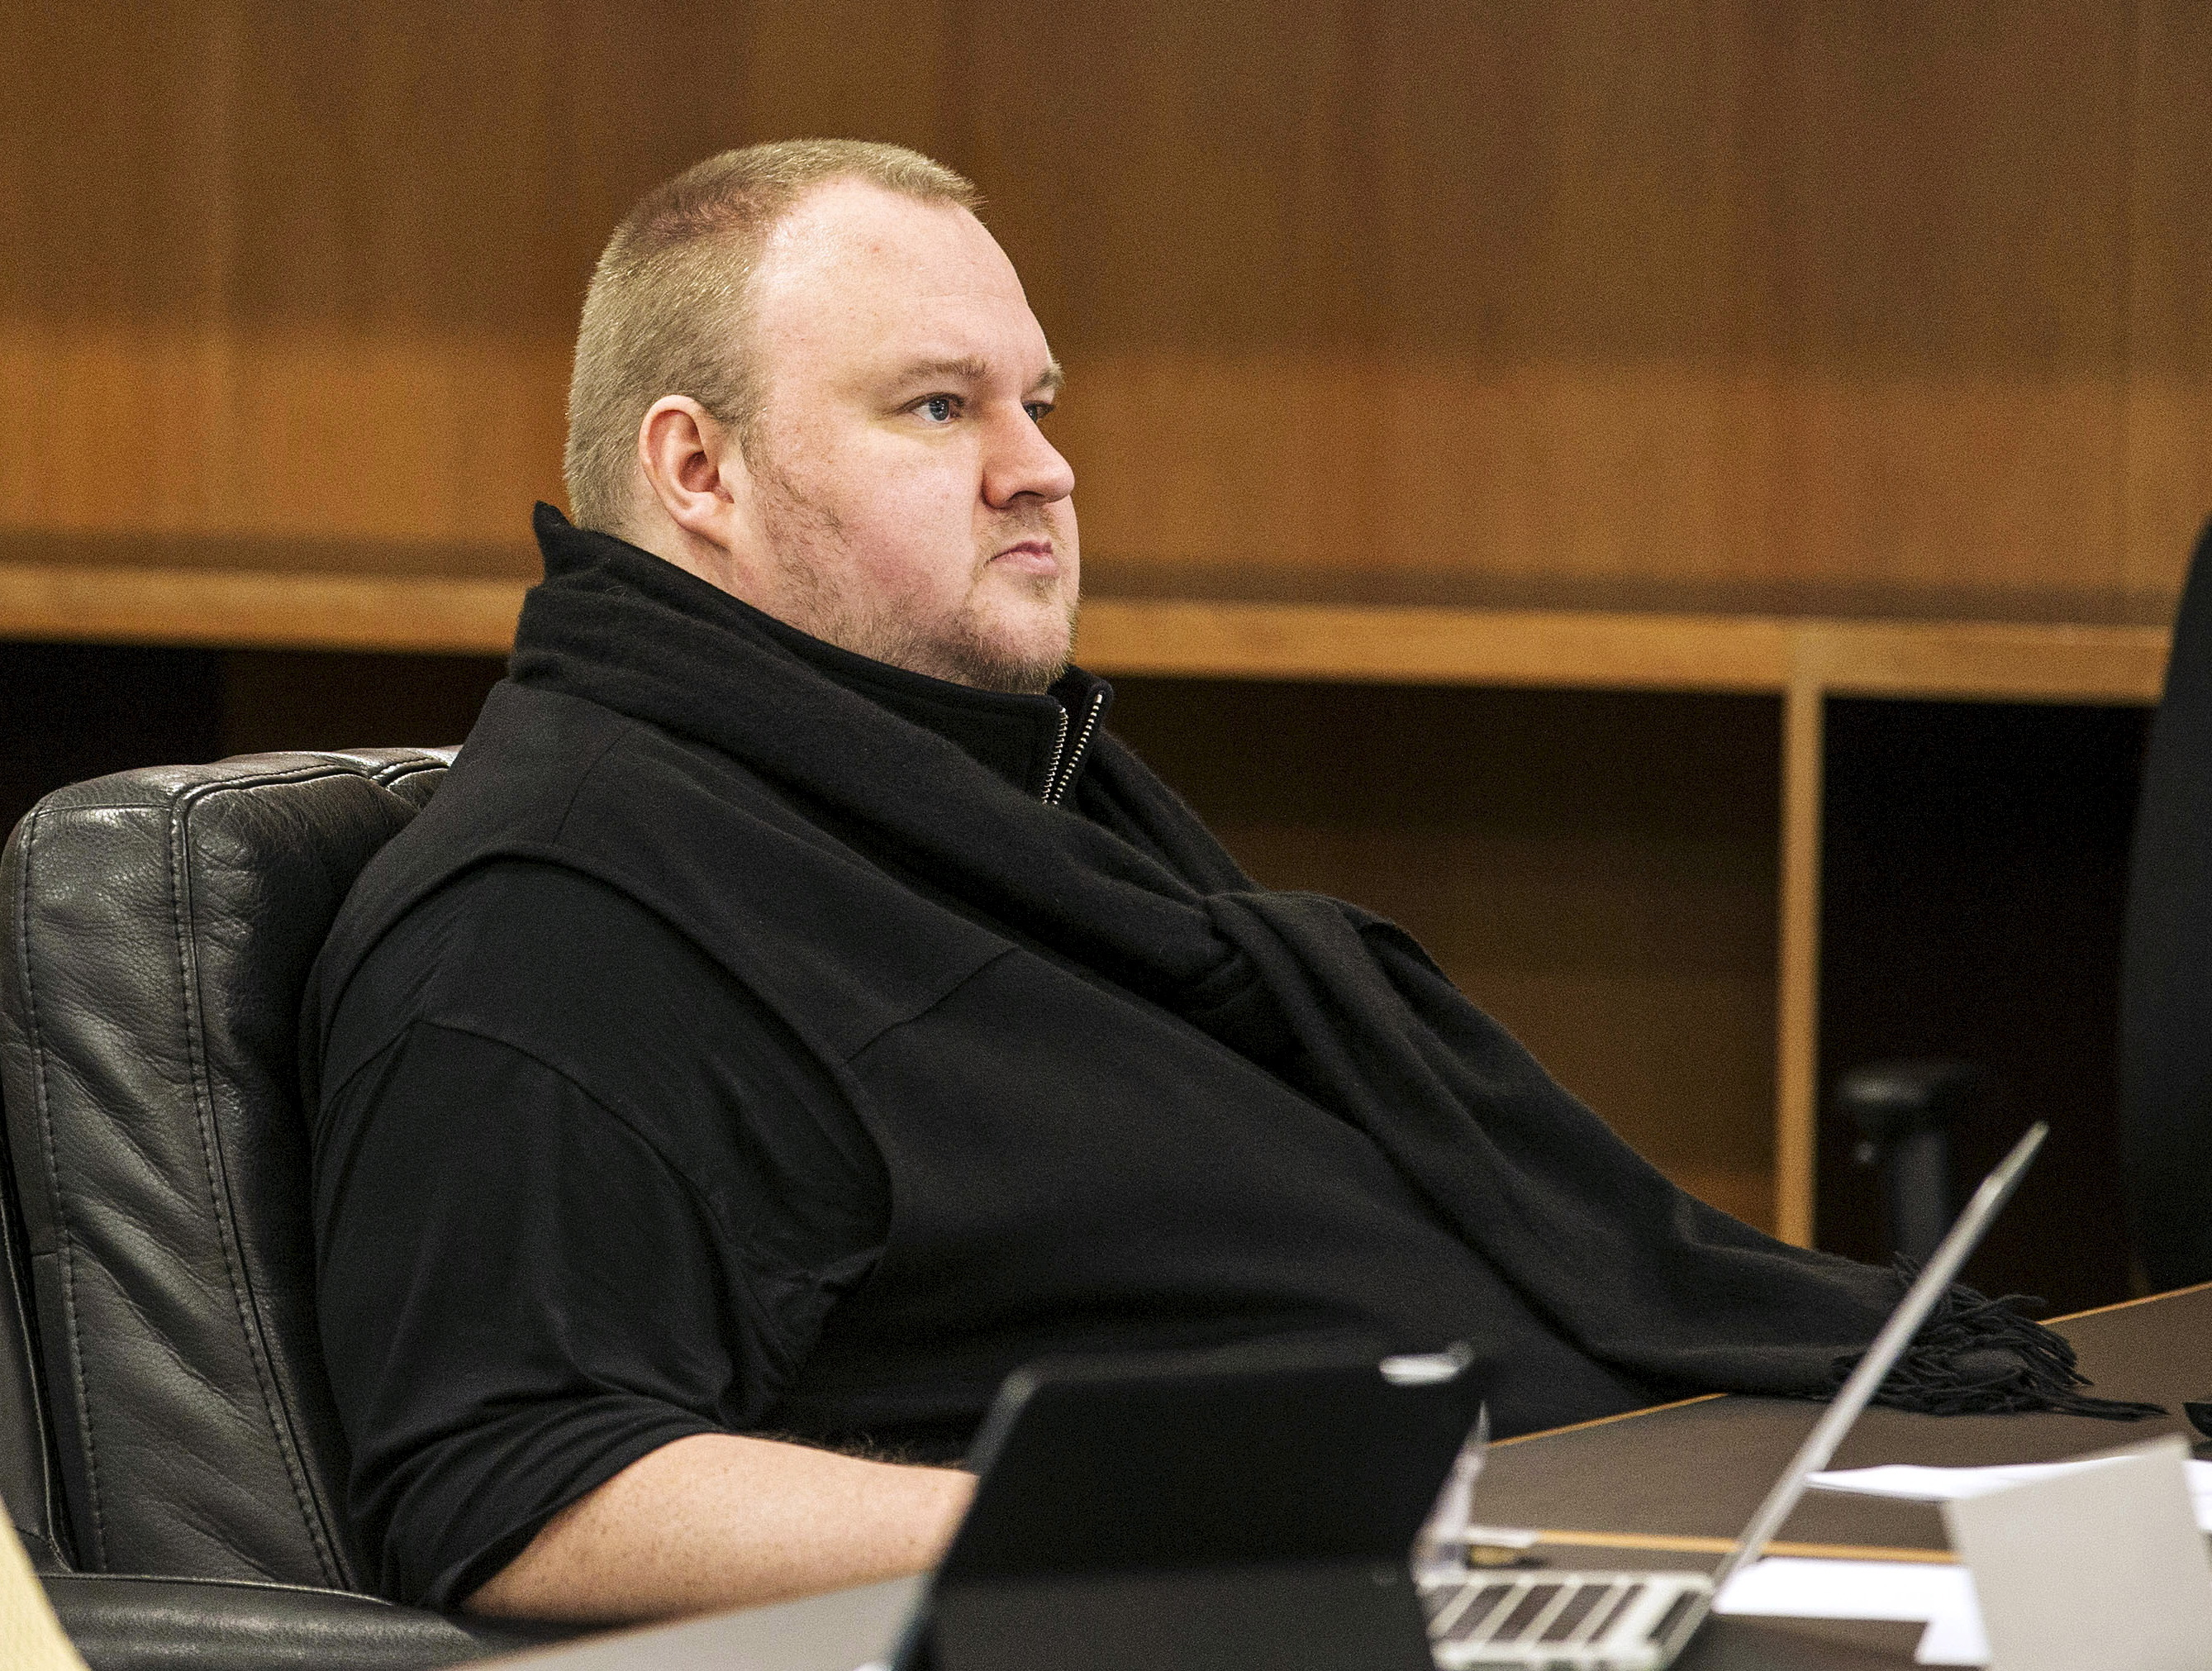 German tech entrepreneur Kim Dotcom attends a court hearing in Auckland on Sept. 21, 2015